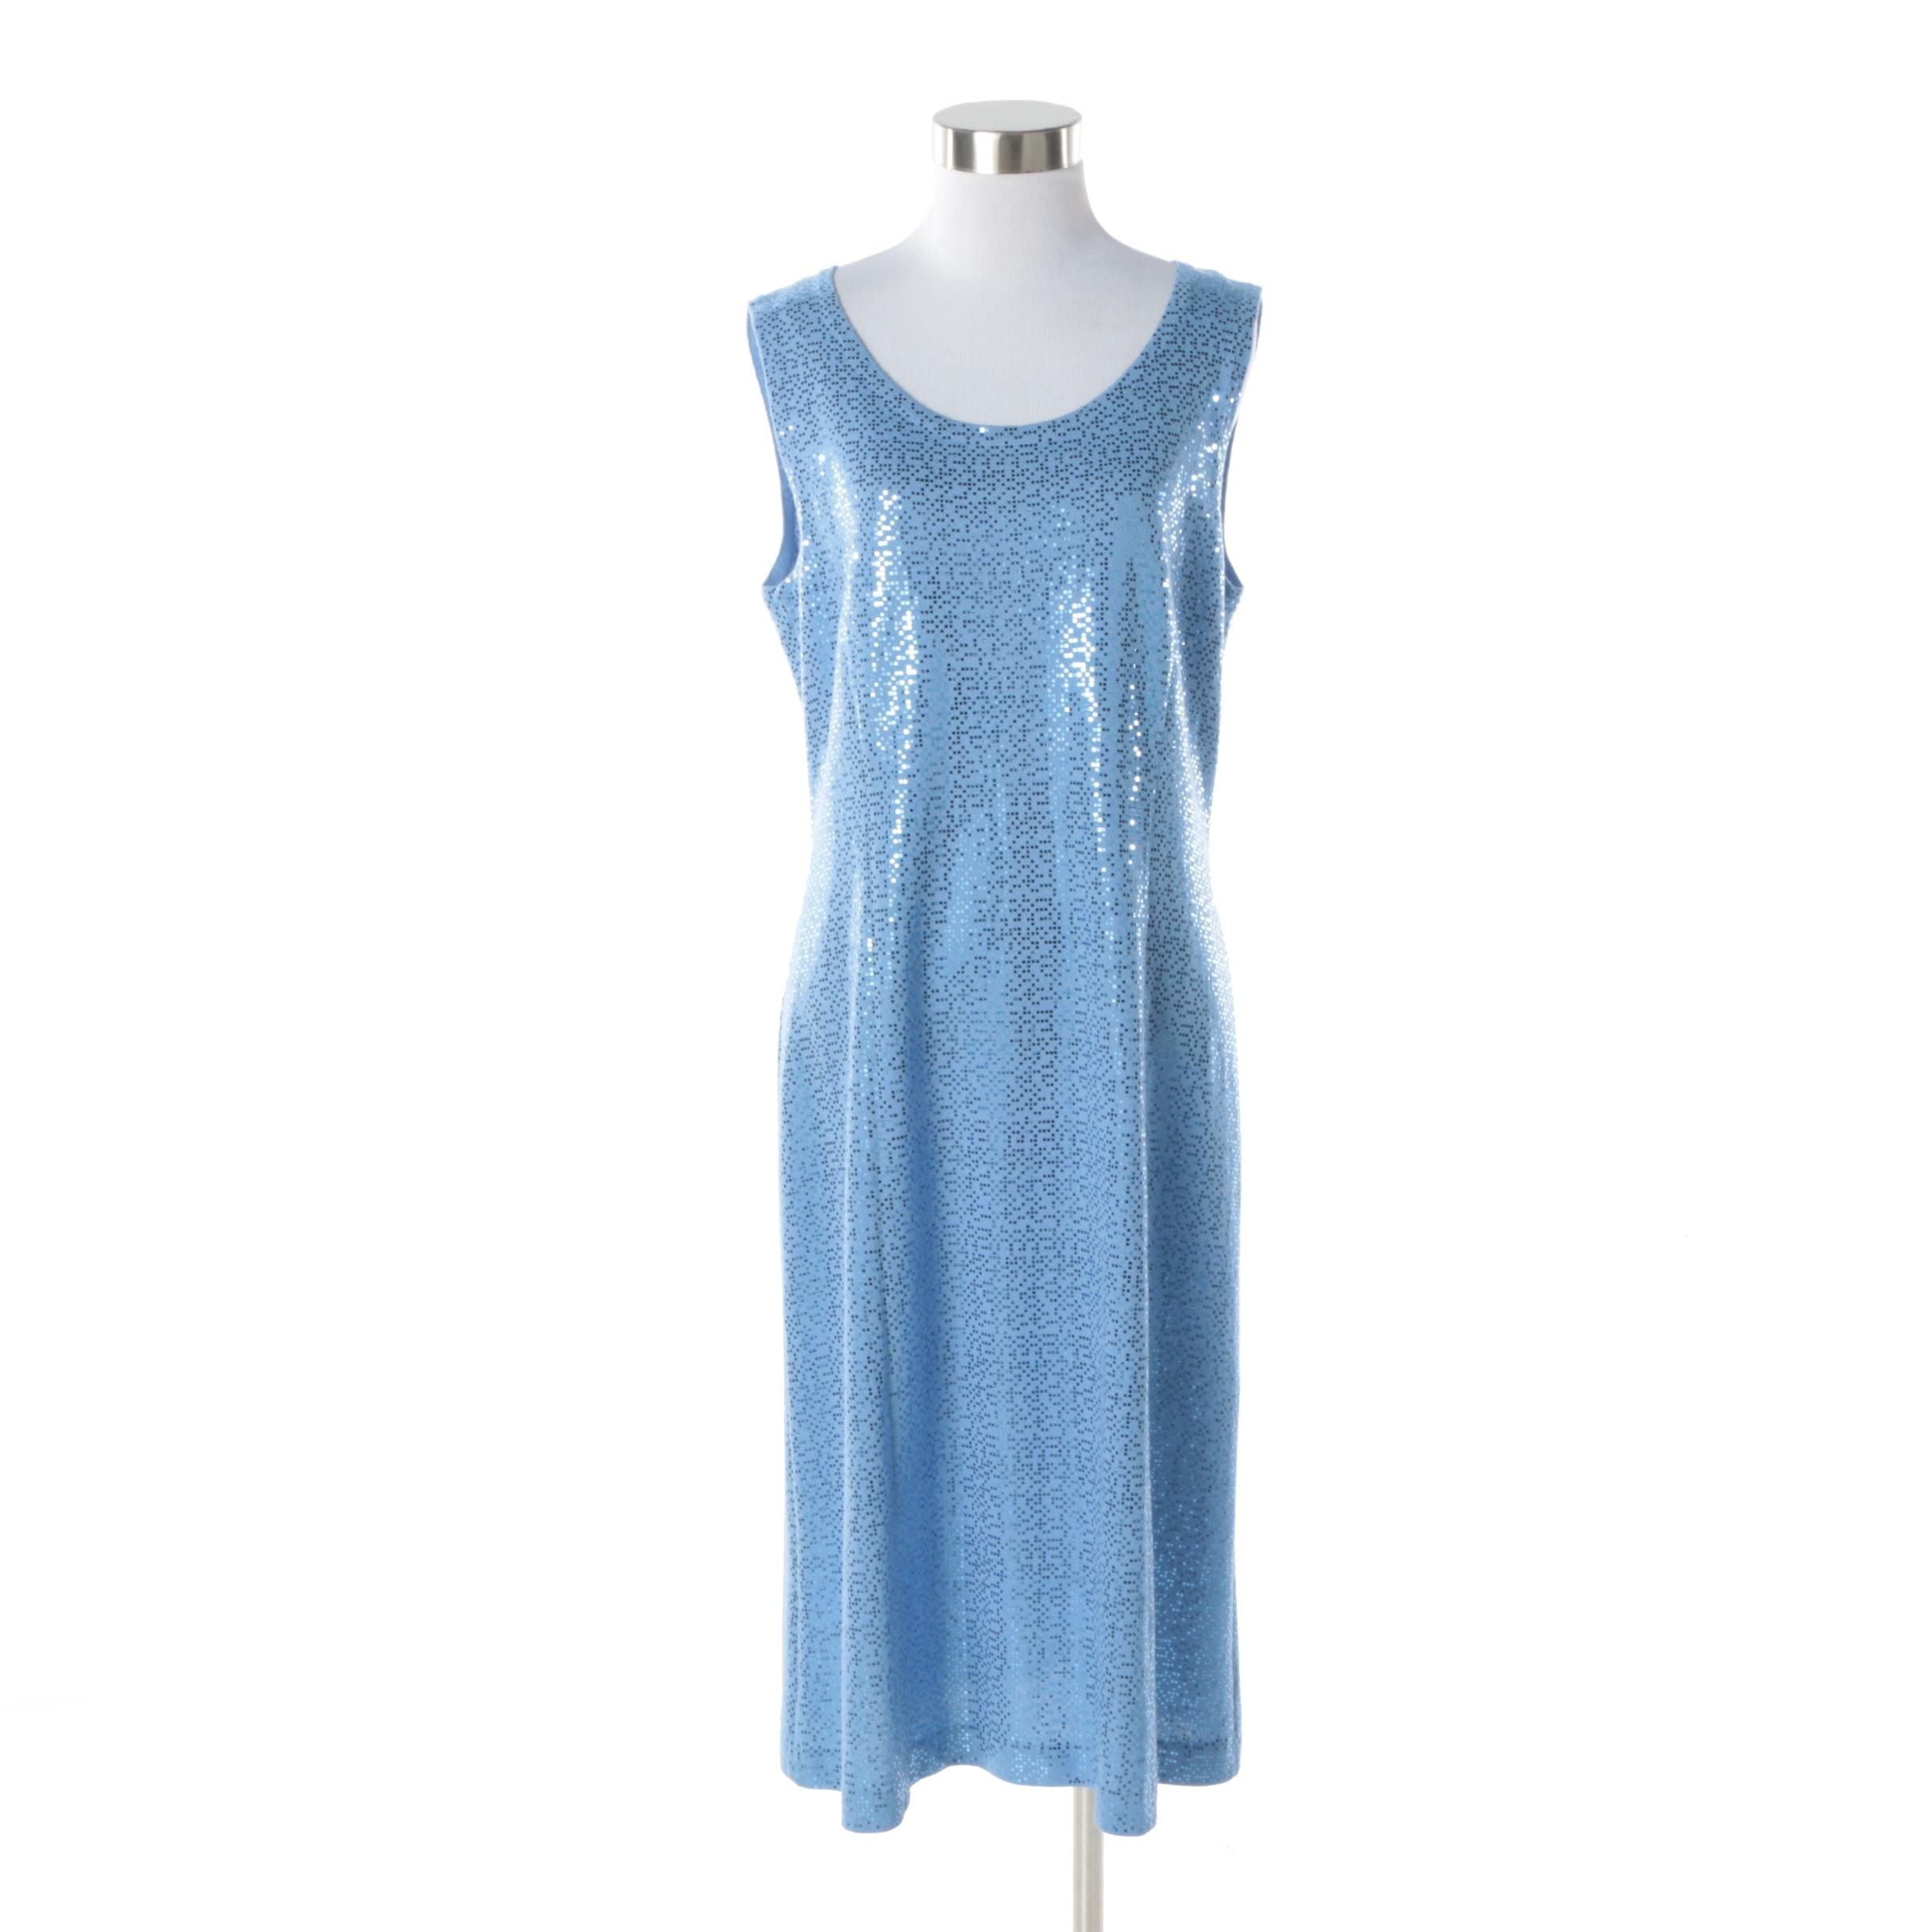 St. John Evening Blue Knit Glitter Dot Sleeveless Dress